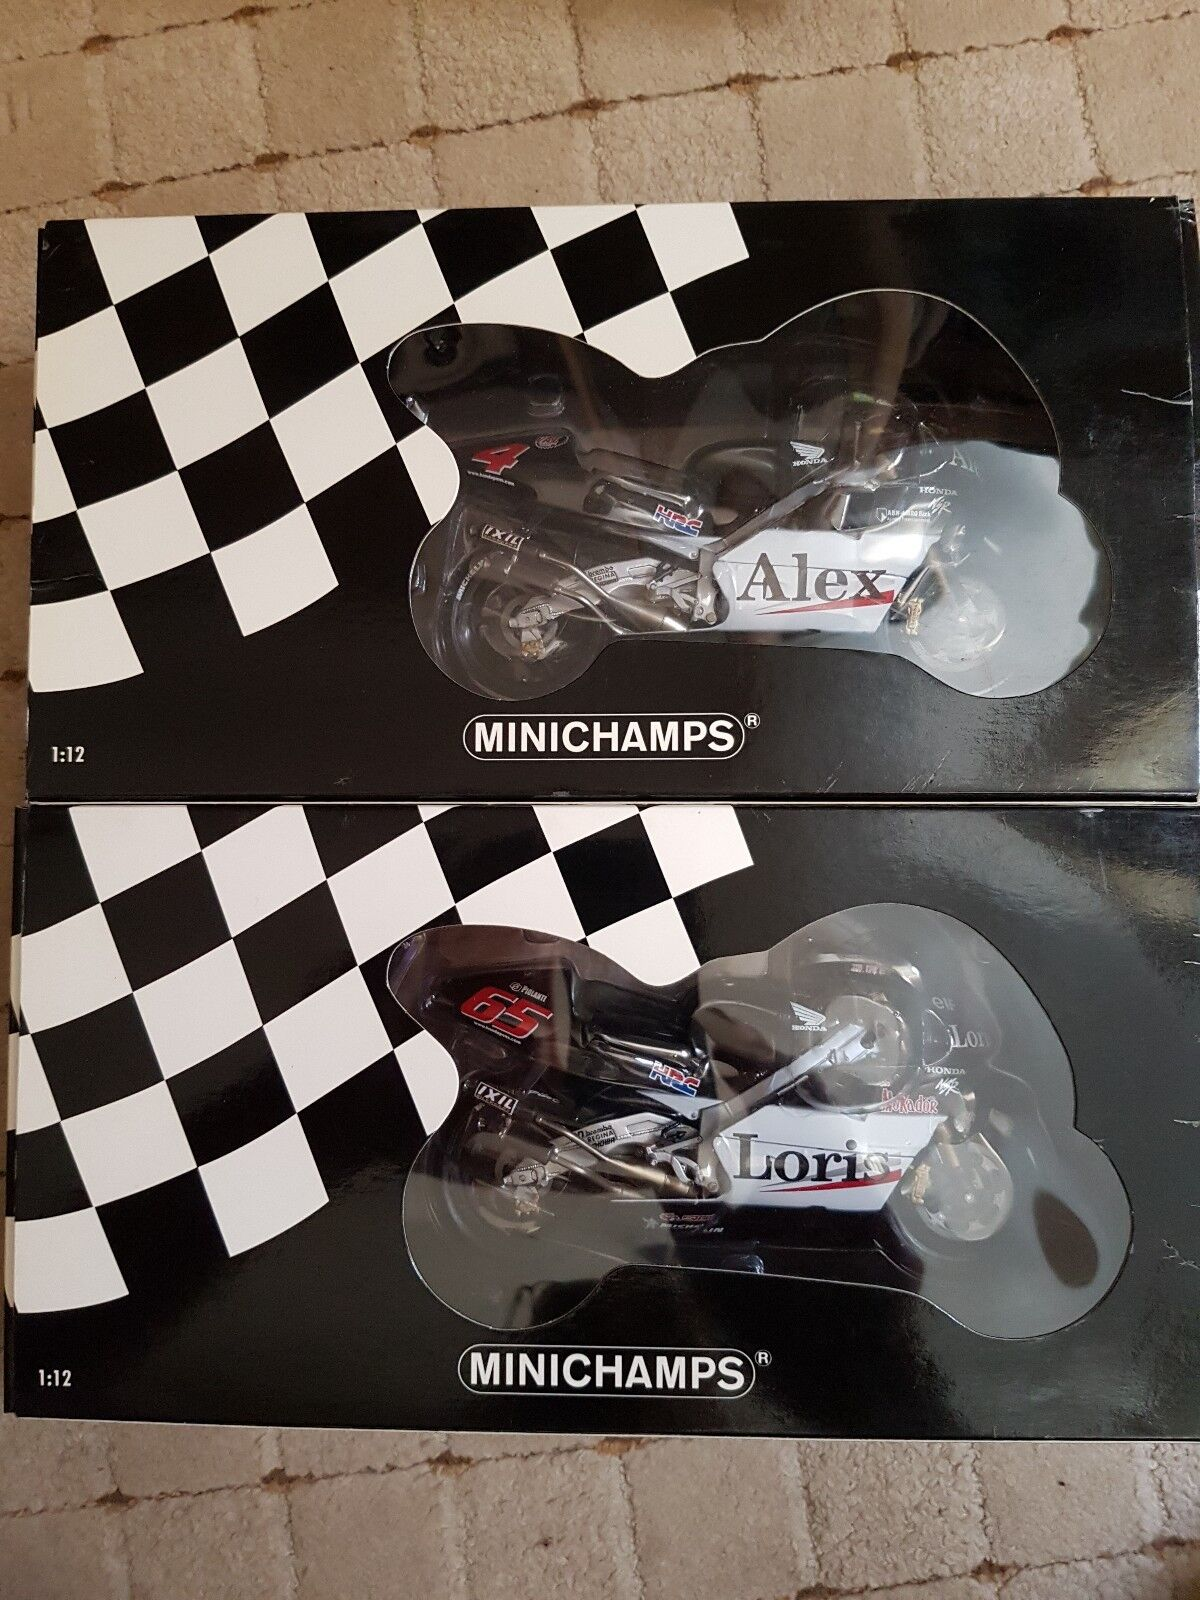 Minichamps 1 12 West HONDA PONS ALEX BARROS & Loris Capirossi 2001